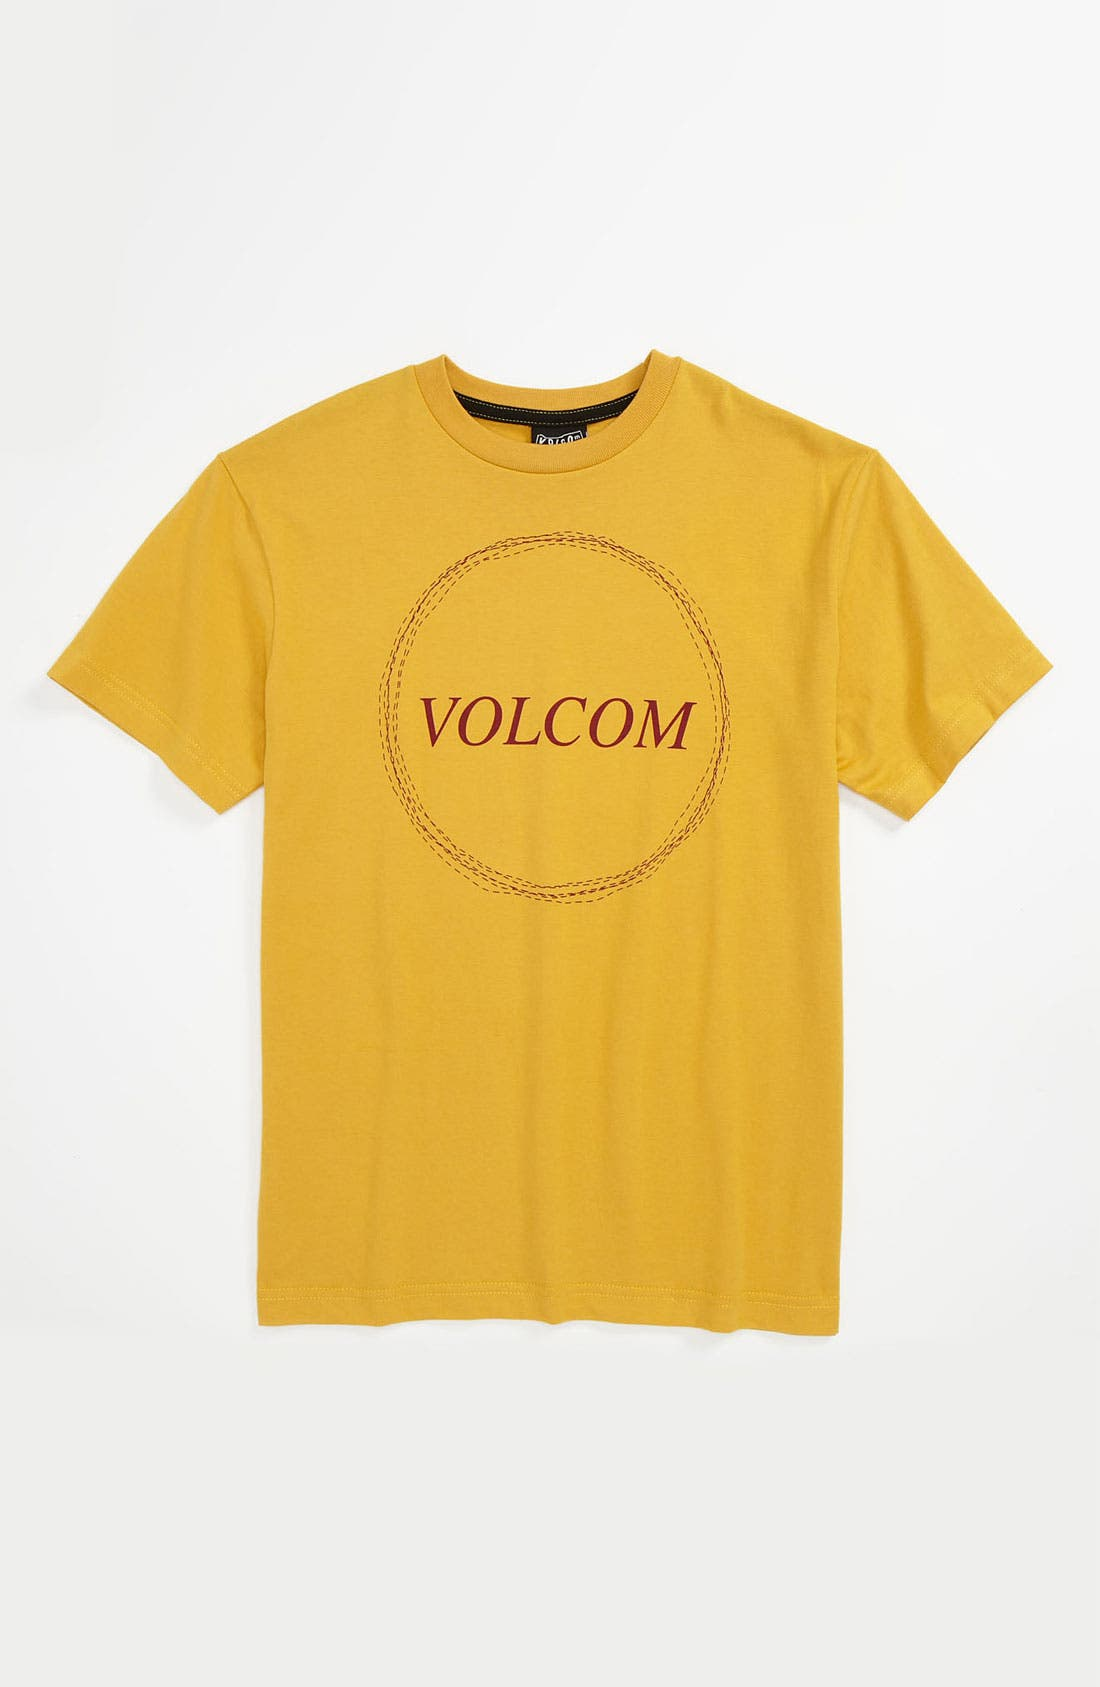 Alternate Image 1 Selected - Volcom 'Cleaner' T-Shirt (Big Boys)